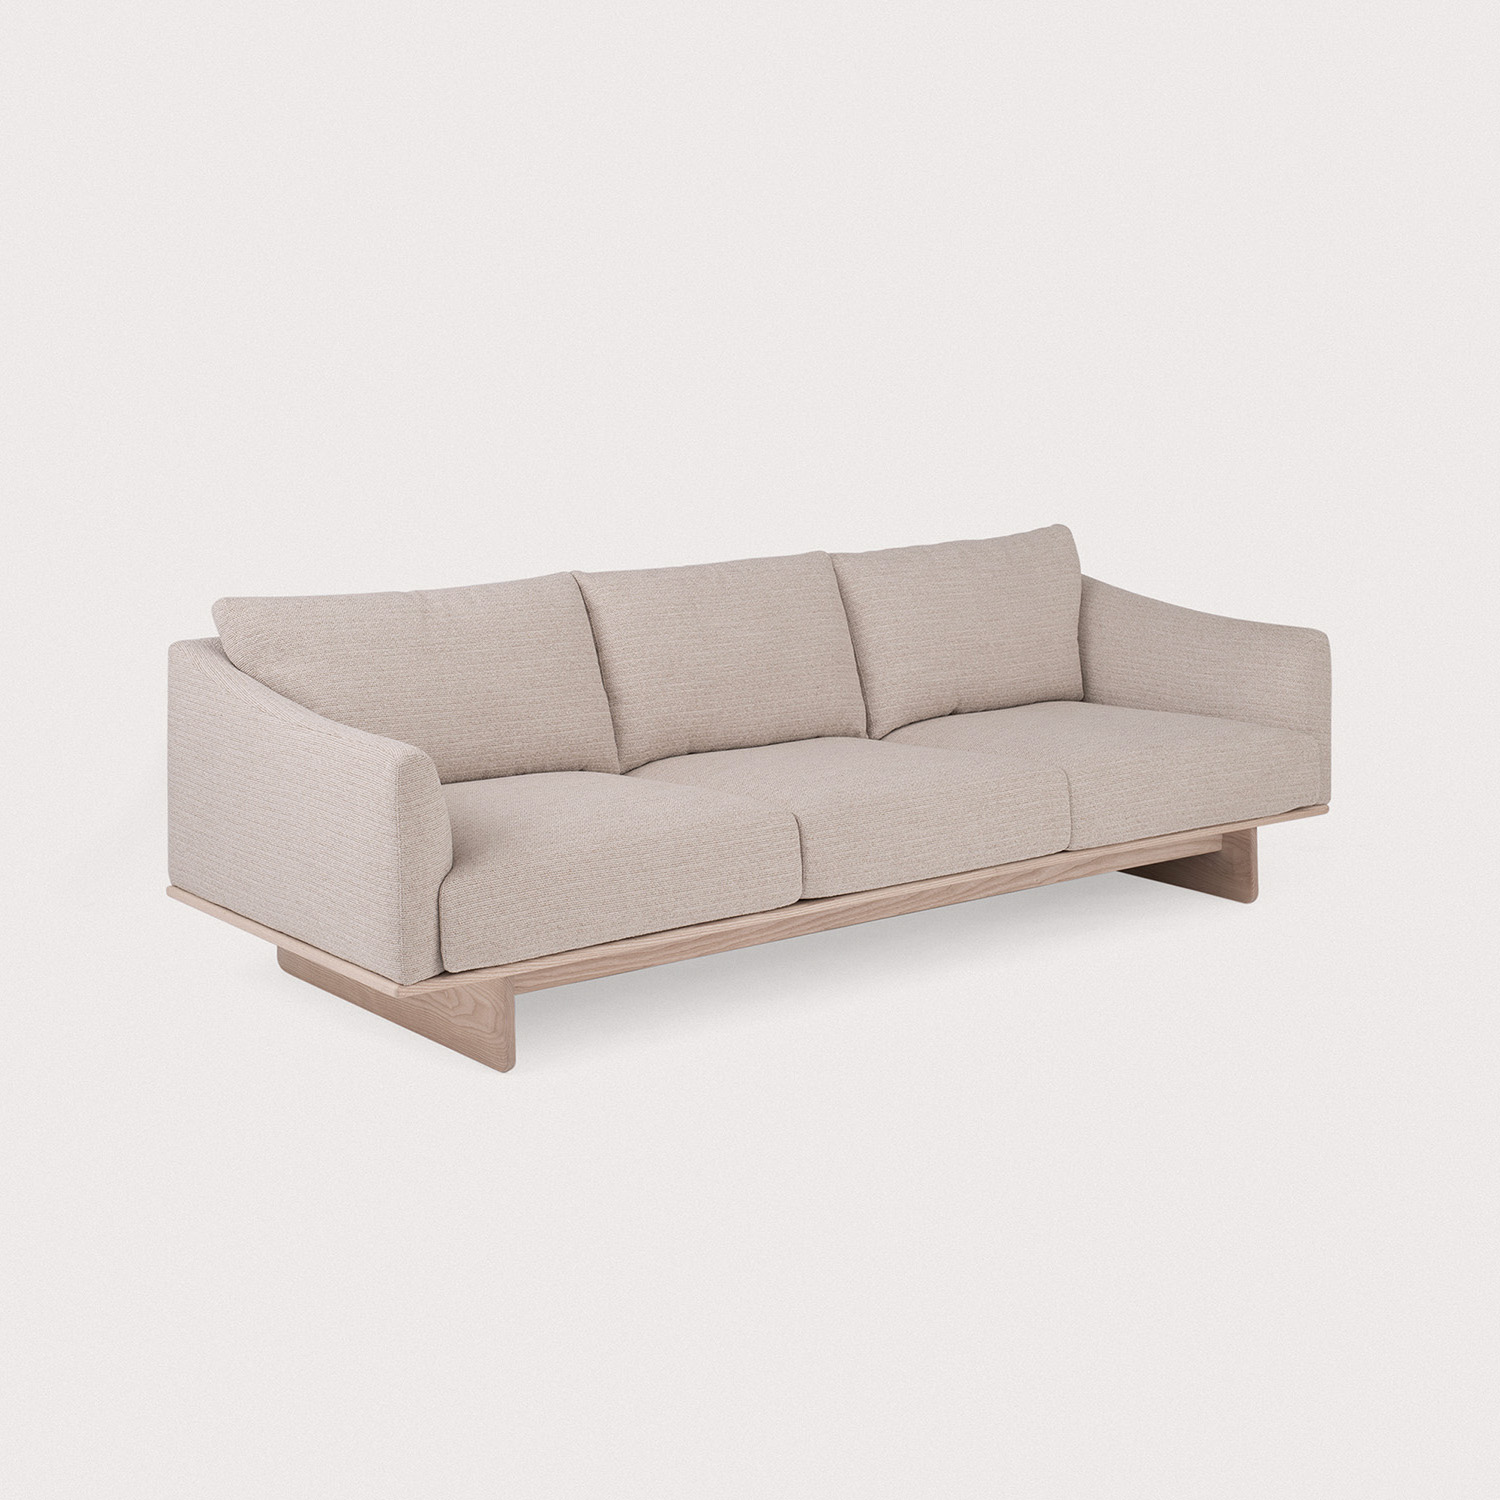 Grade-LargeSofa_Savanna202_1500x1500_rev